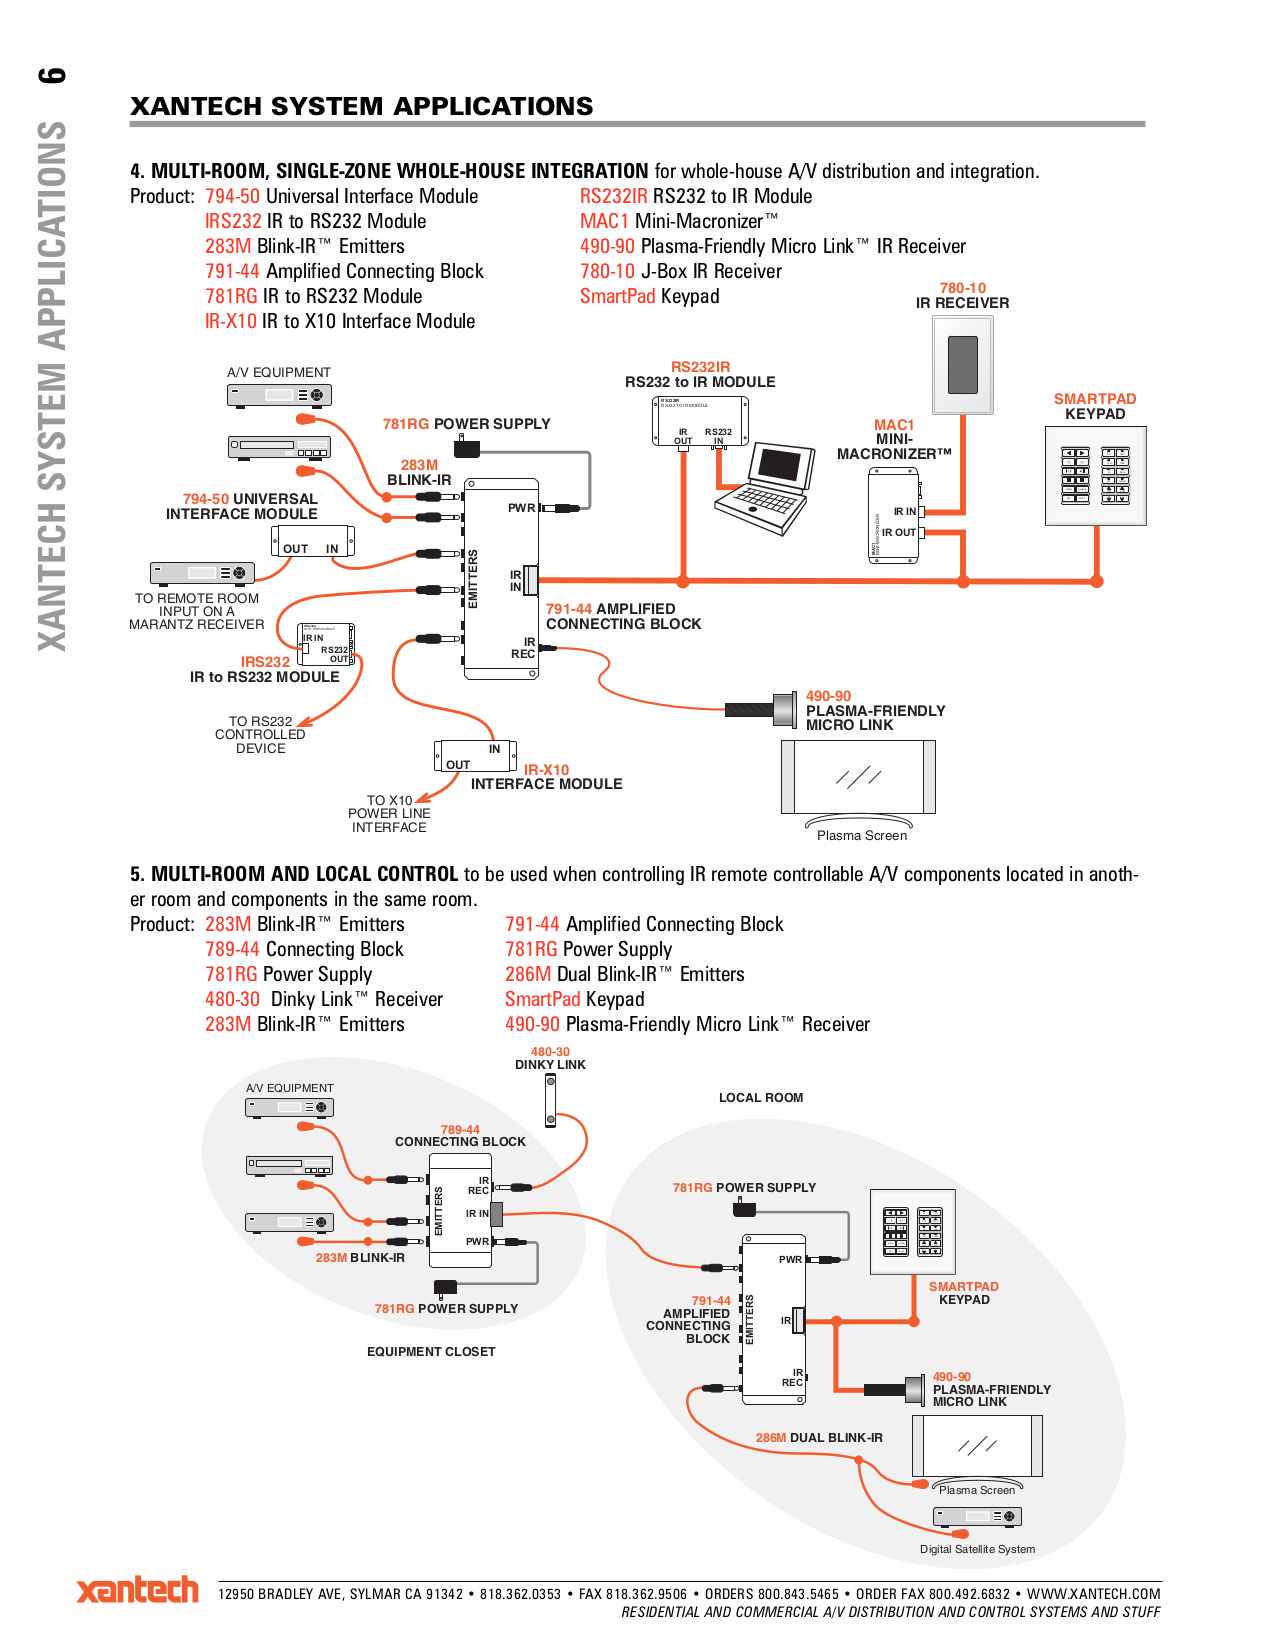 Xantech 789 44 Wiring Diagram Free Download • Oasis-dl.co